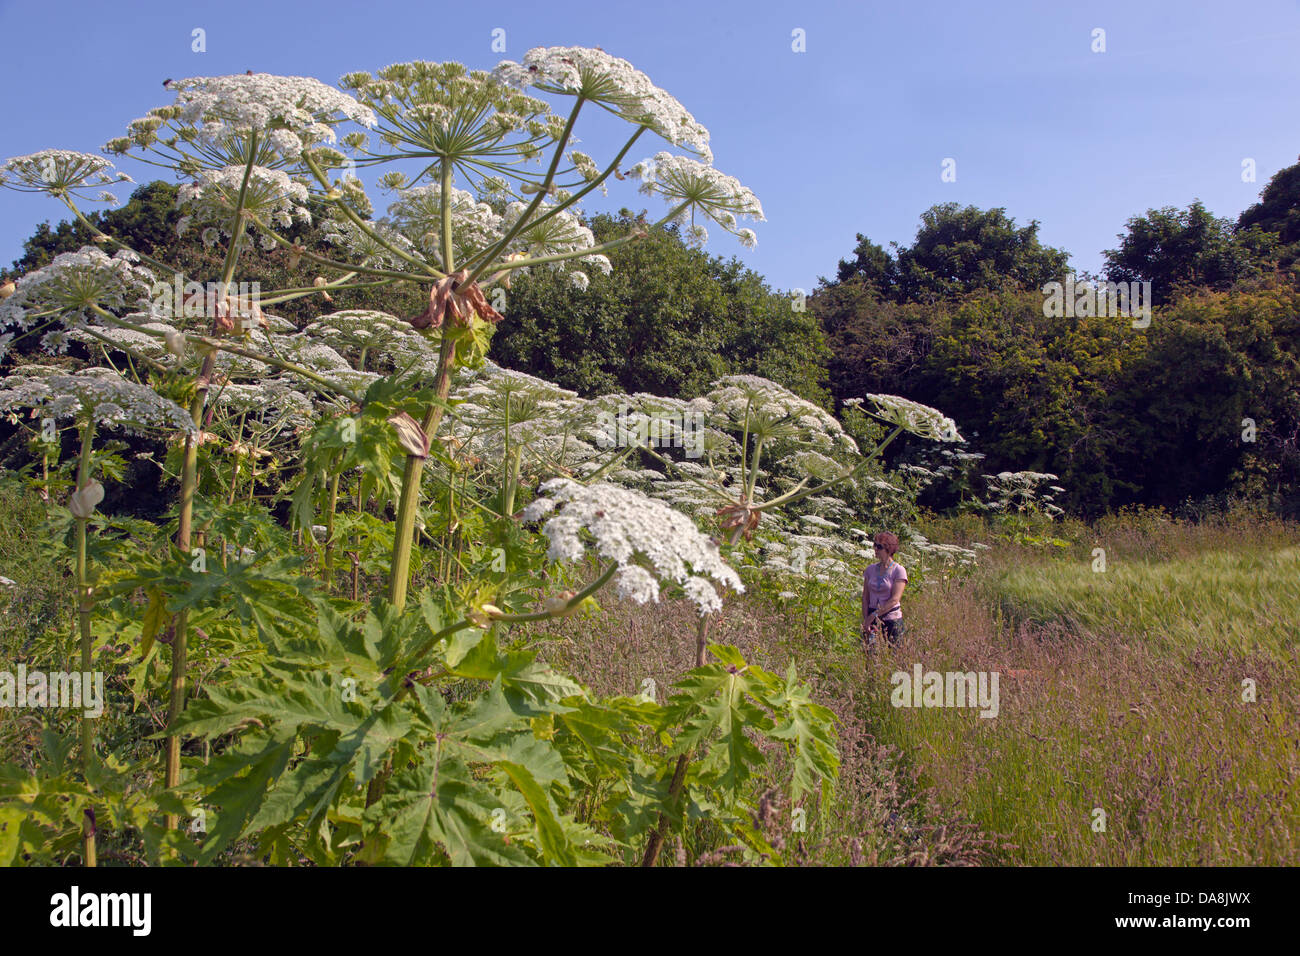 Giant Hogweed Heraculum mantegazziamum growing near the sea - Stock Image